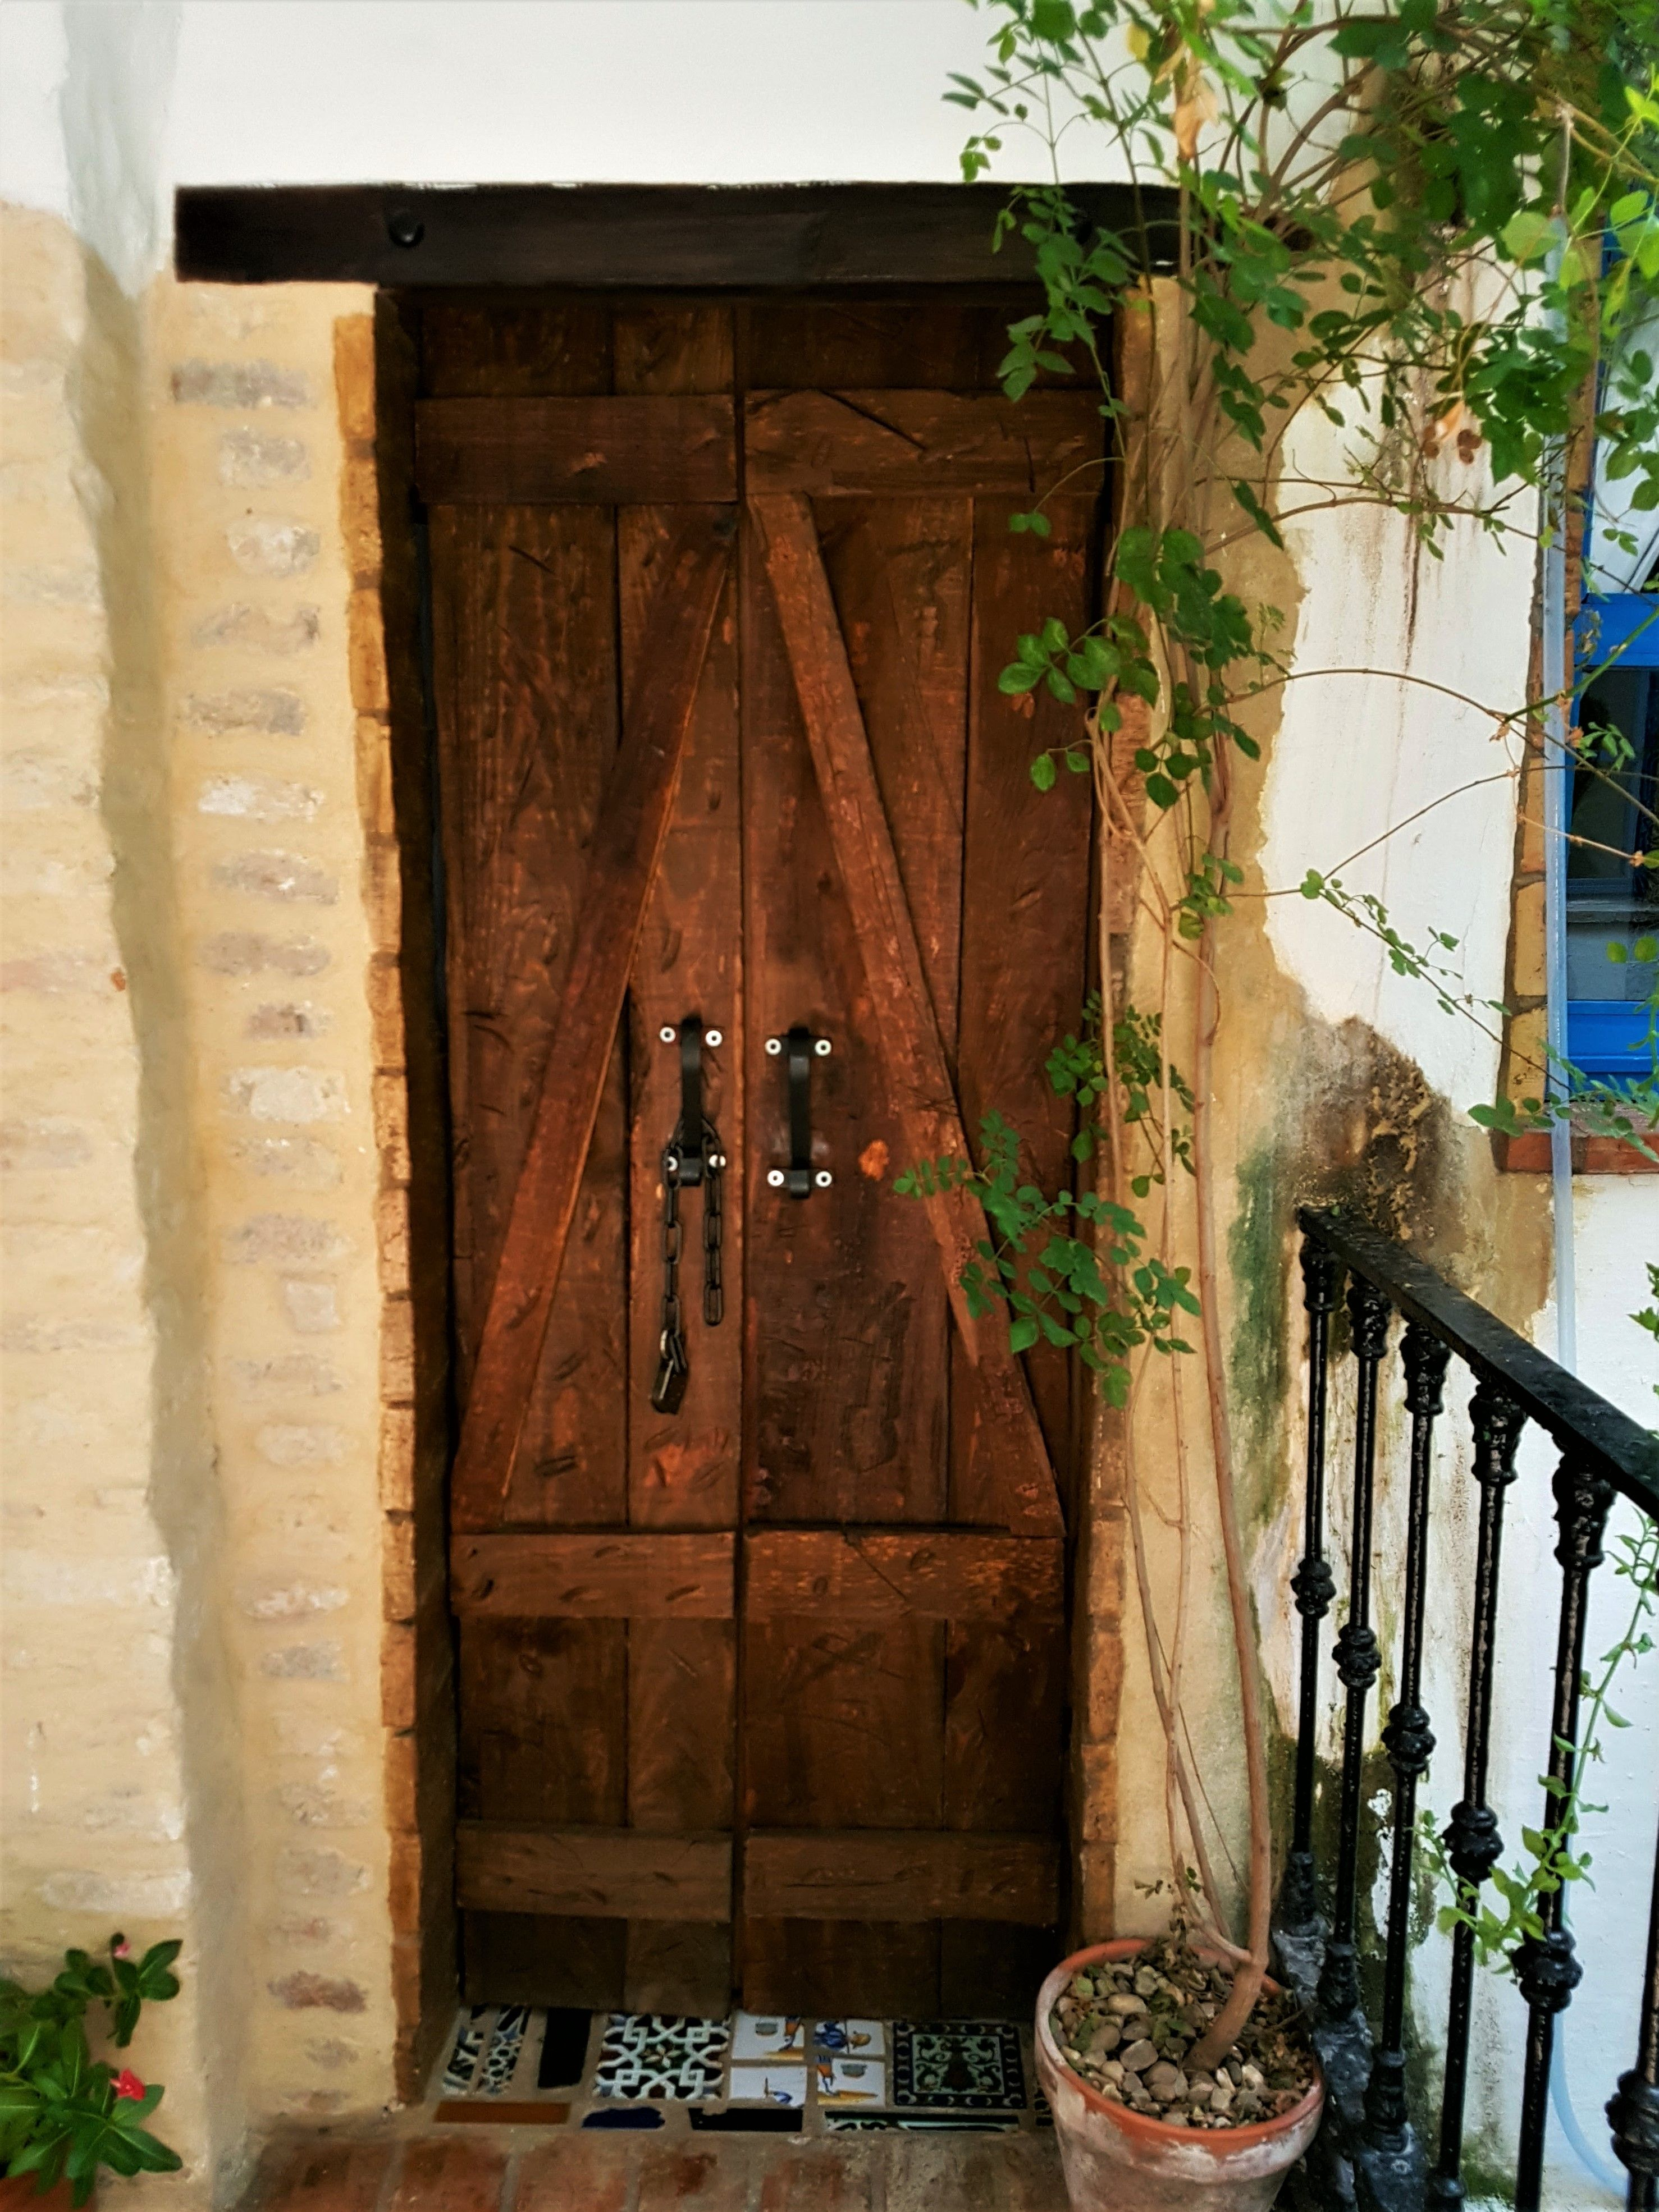 Unique Experience In Seville Sevilla Spain Vintage Rustic Antique Artisan Forged Gold Metal Lock With Forg Wood Doors Interior Rustic Wood Doors Wood Doors